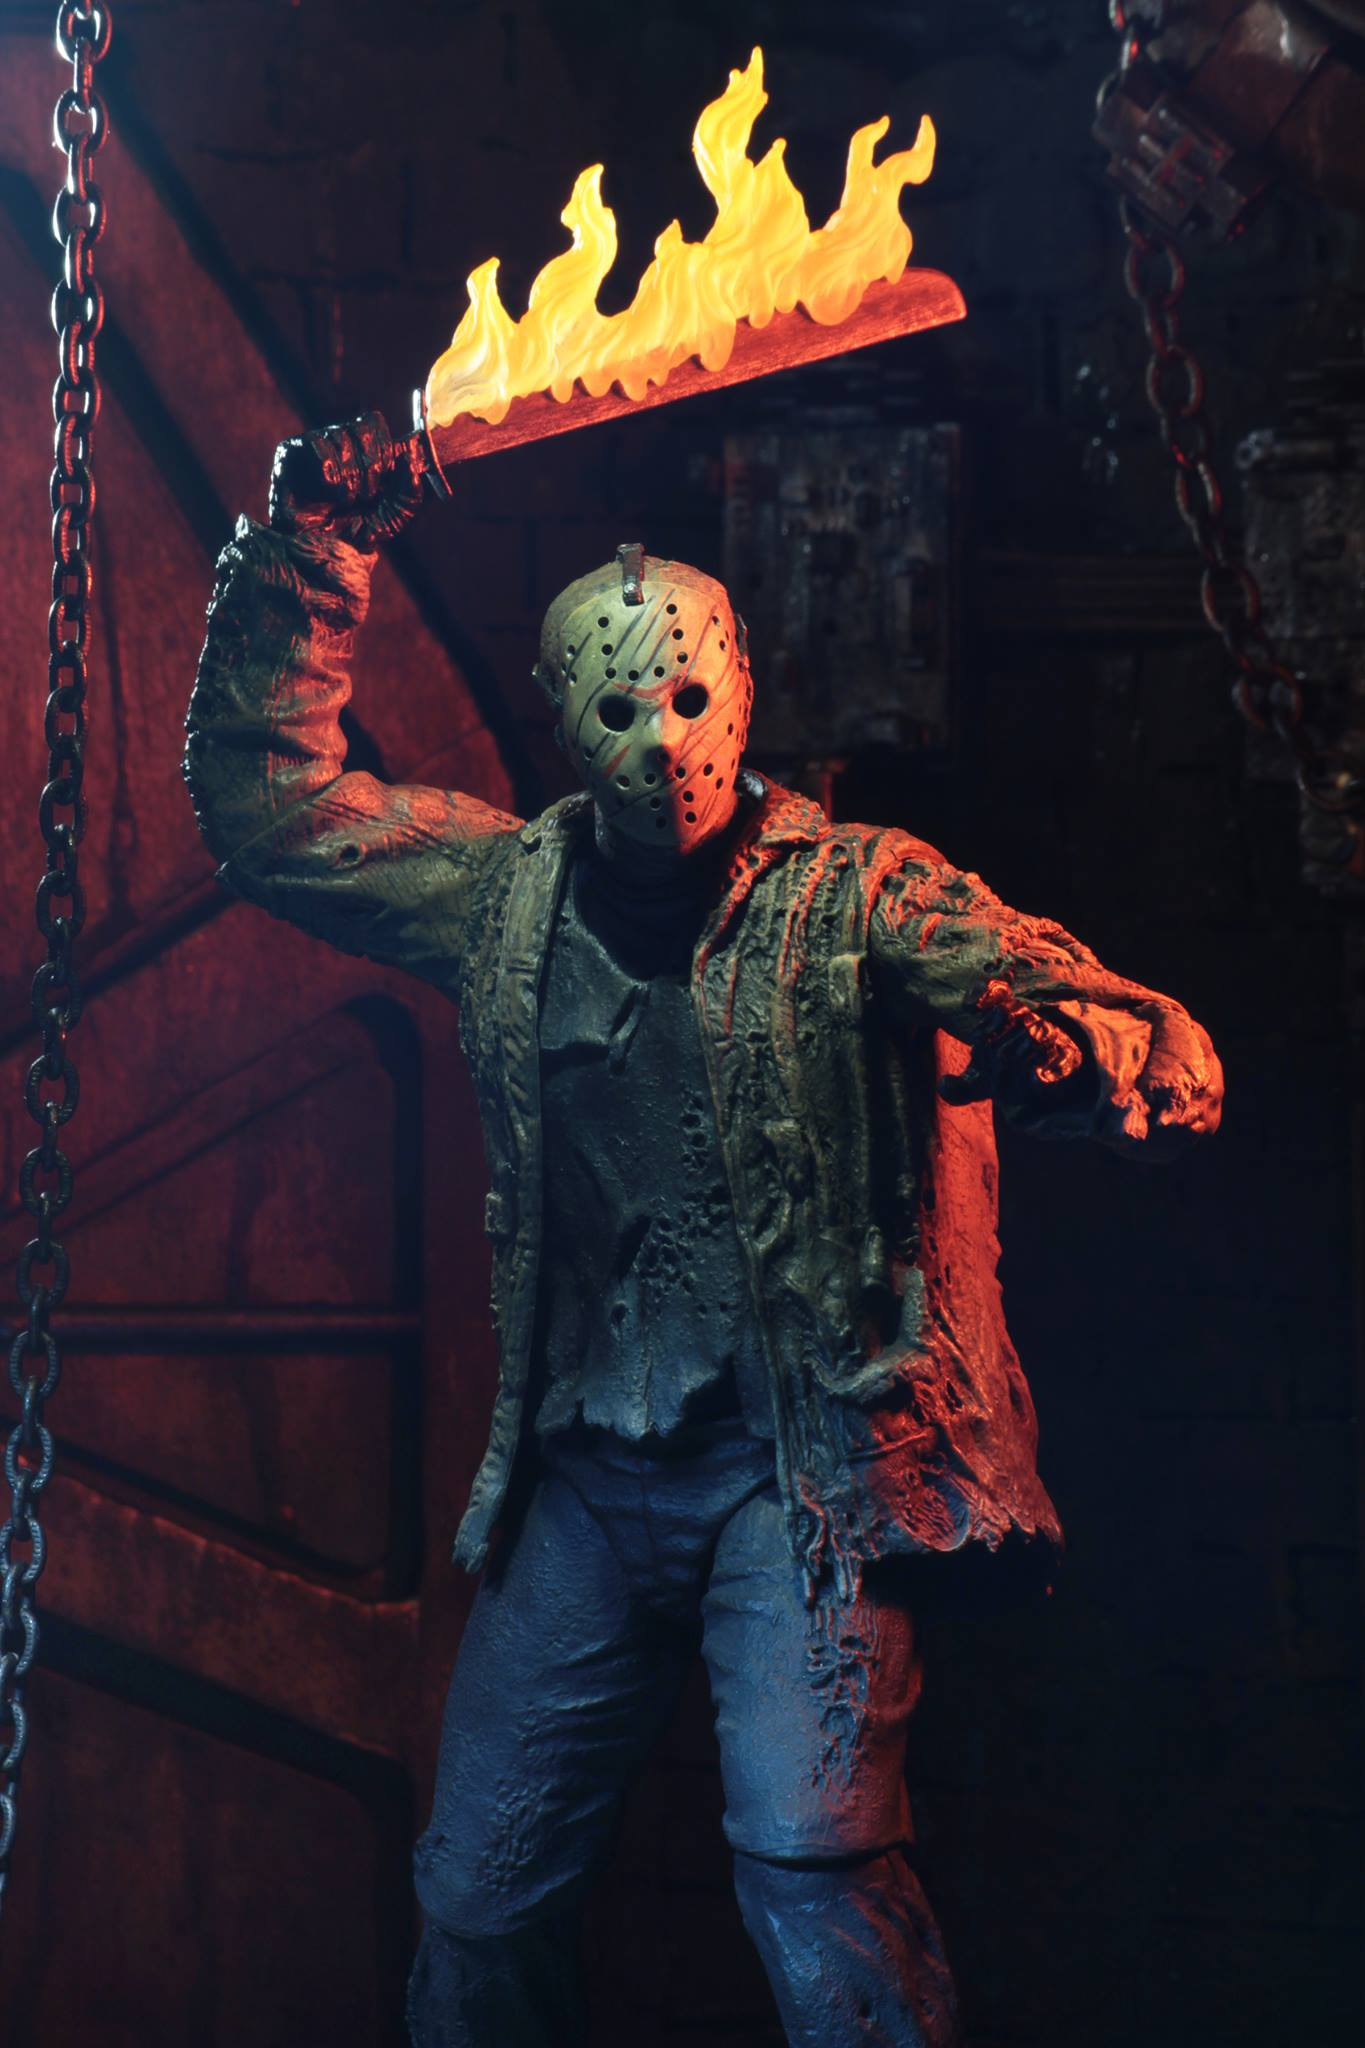 Ultimate Jason Voorhees figure 2